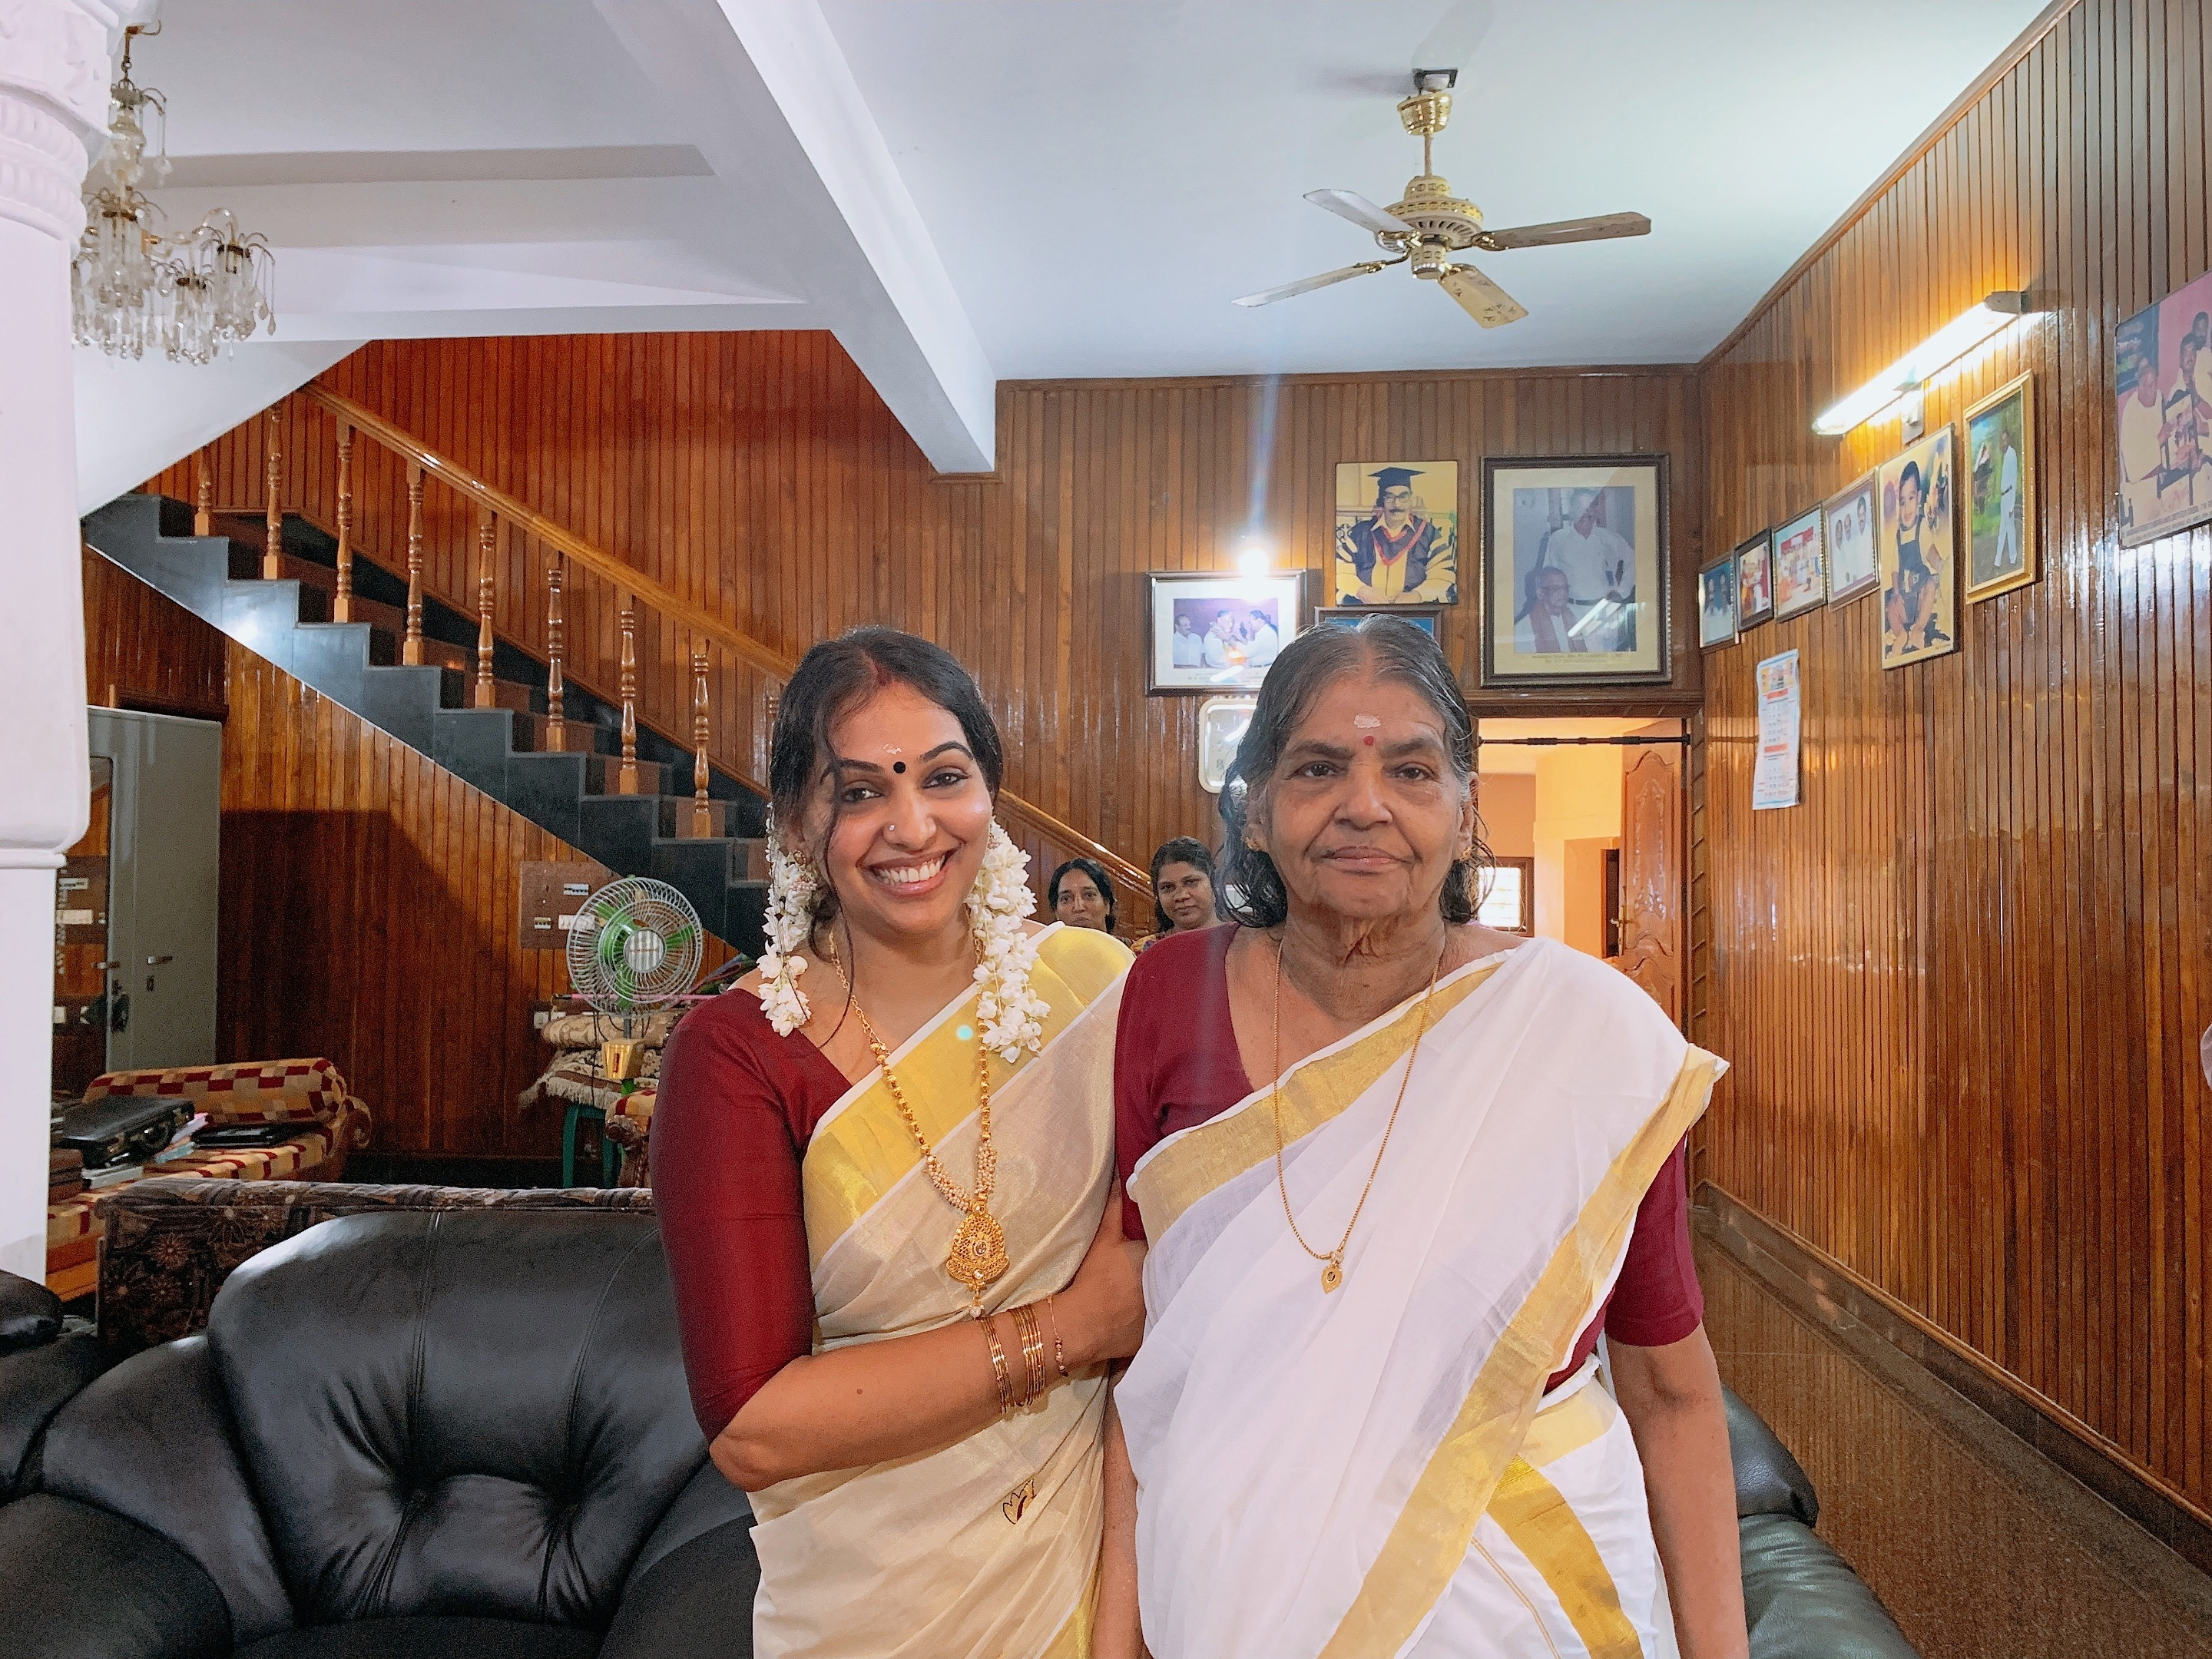 Veena of Veena's Curry World, a highly popular video blog on YouTube gives all credits to her mother Yasodara